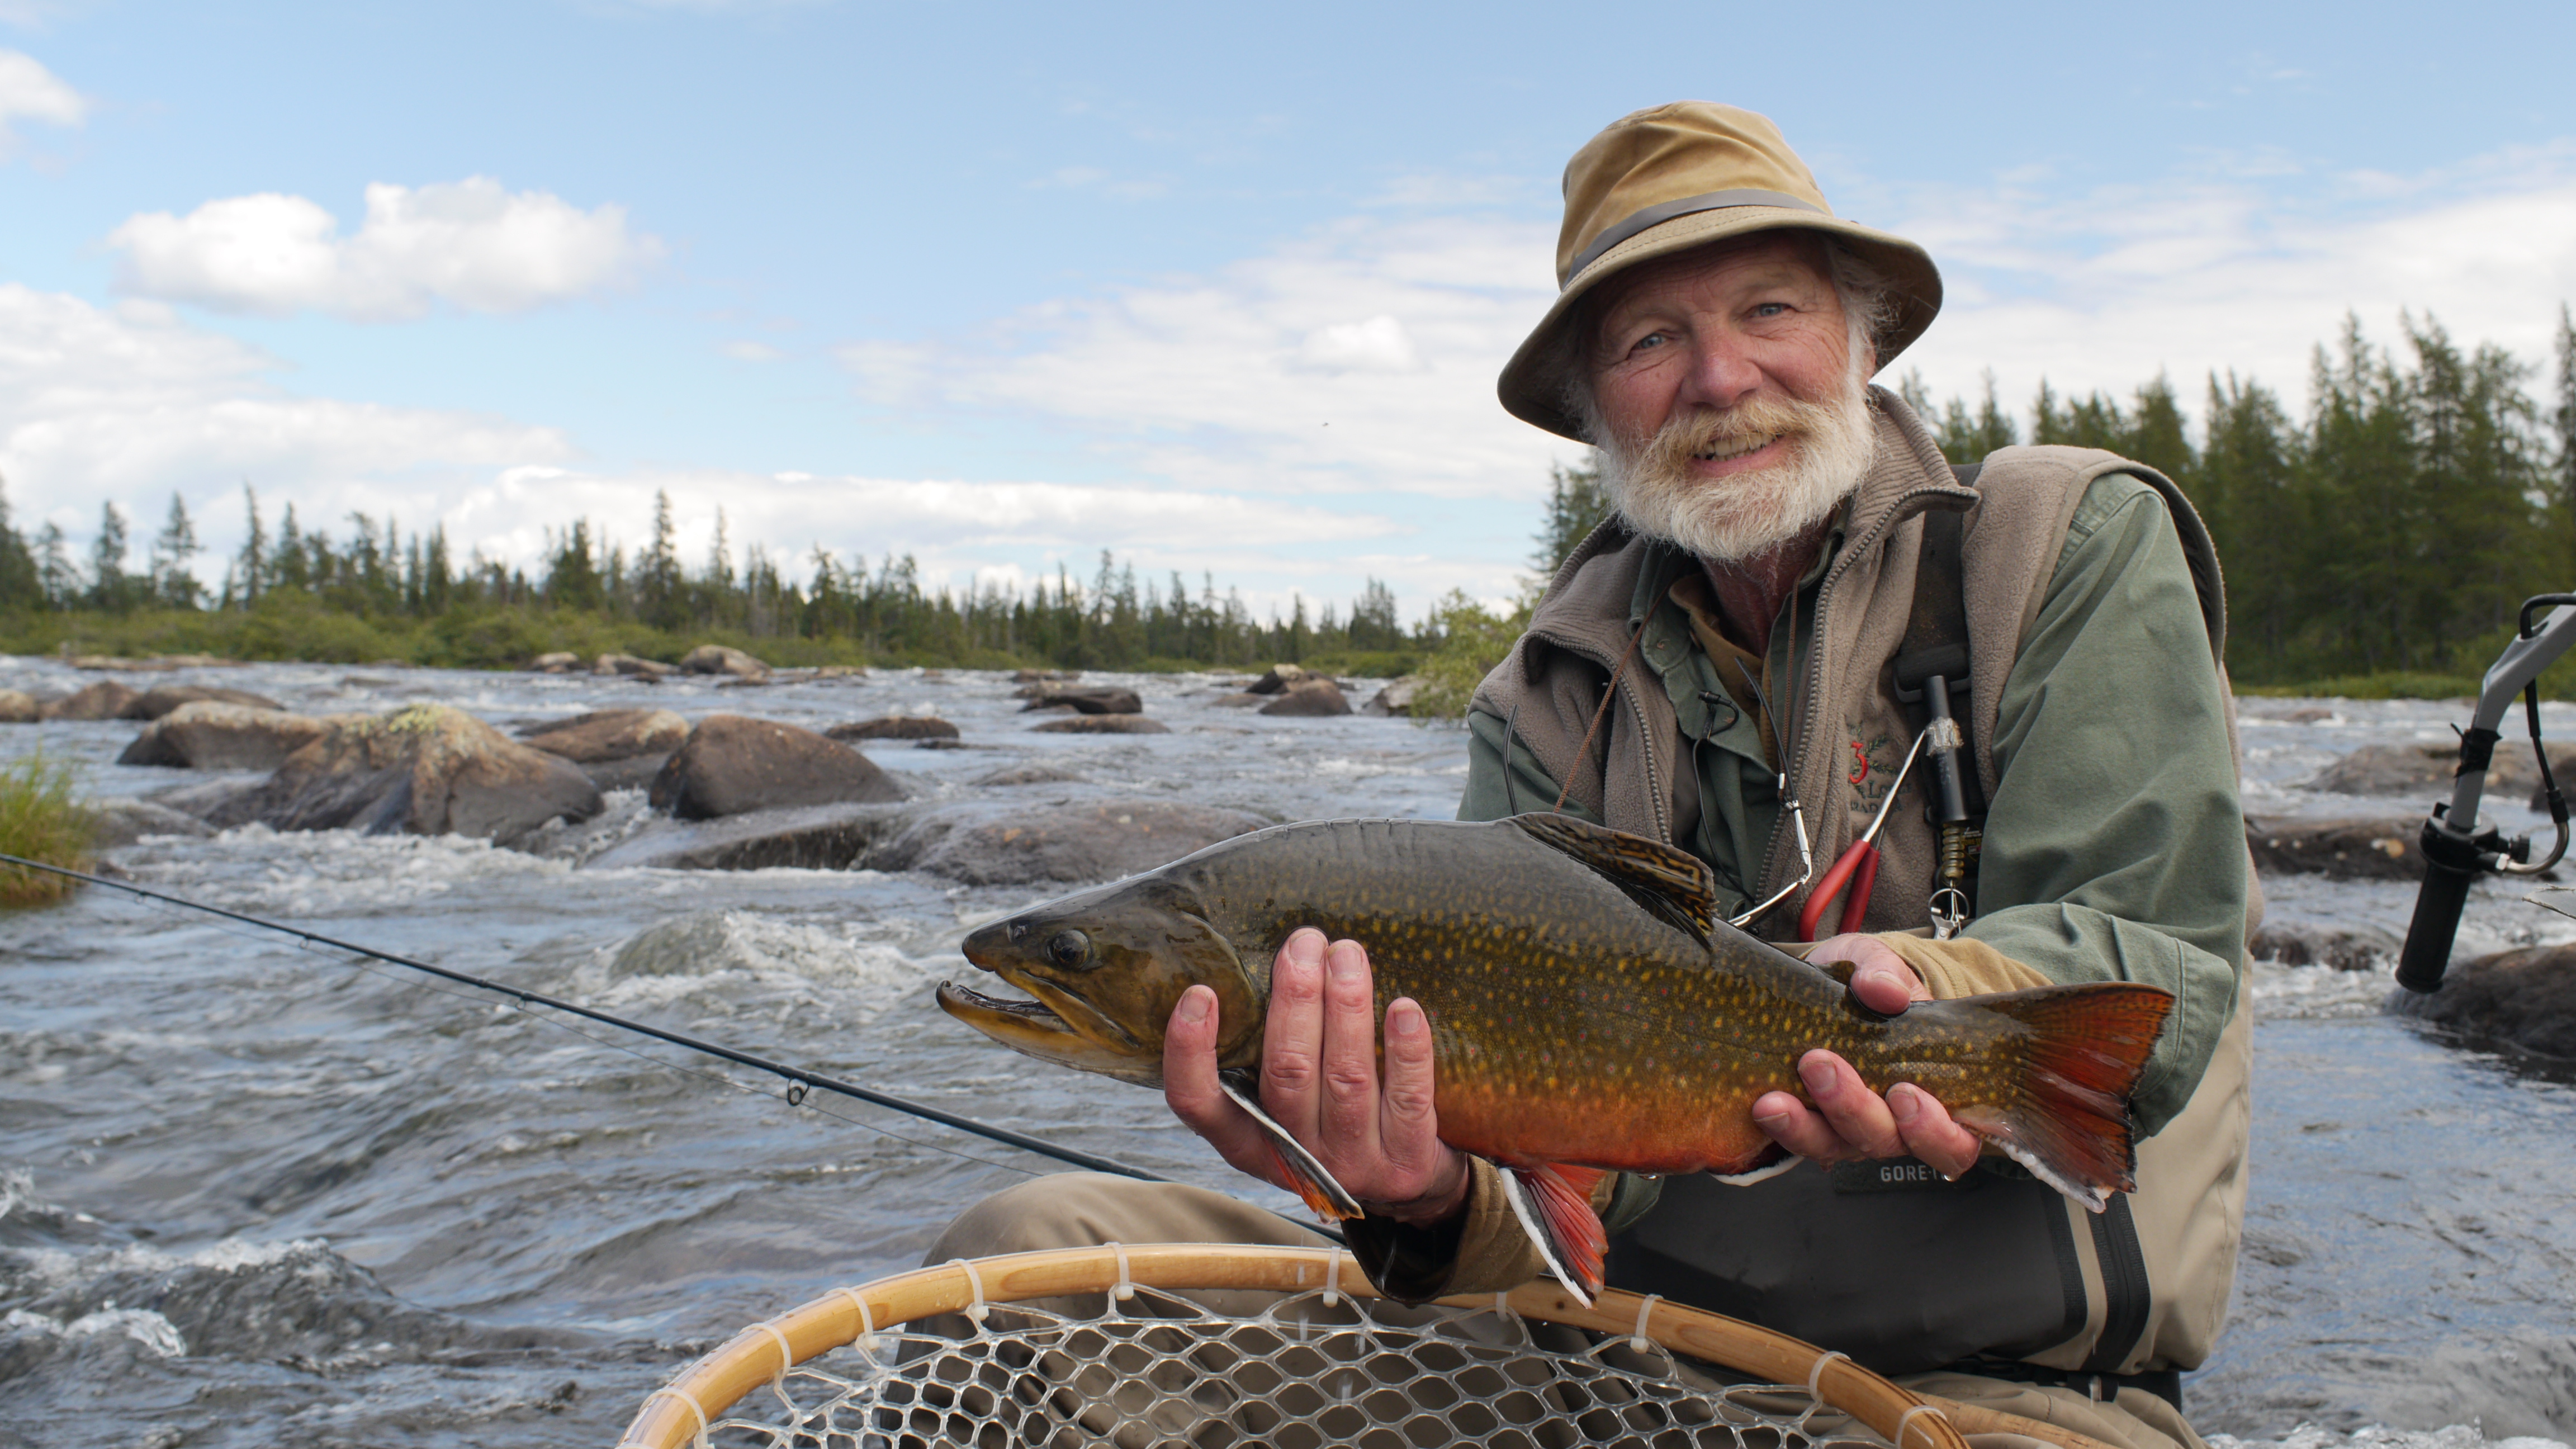 Fly fishing film tour returns with another great lineup for Trout fly fishing